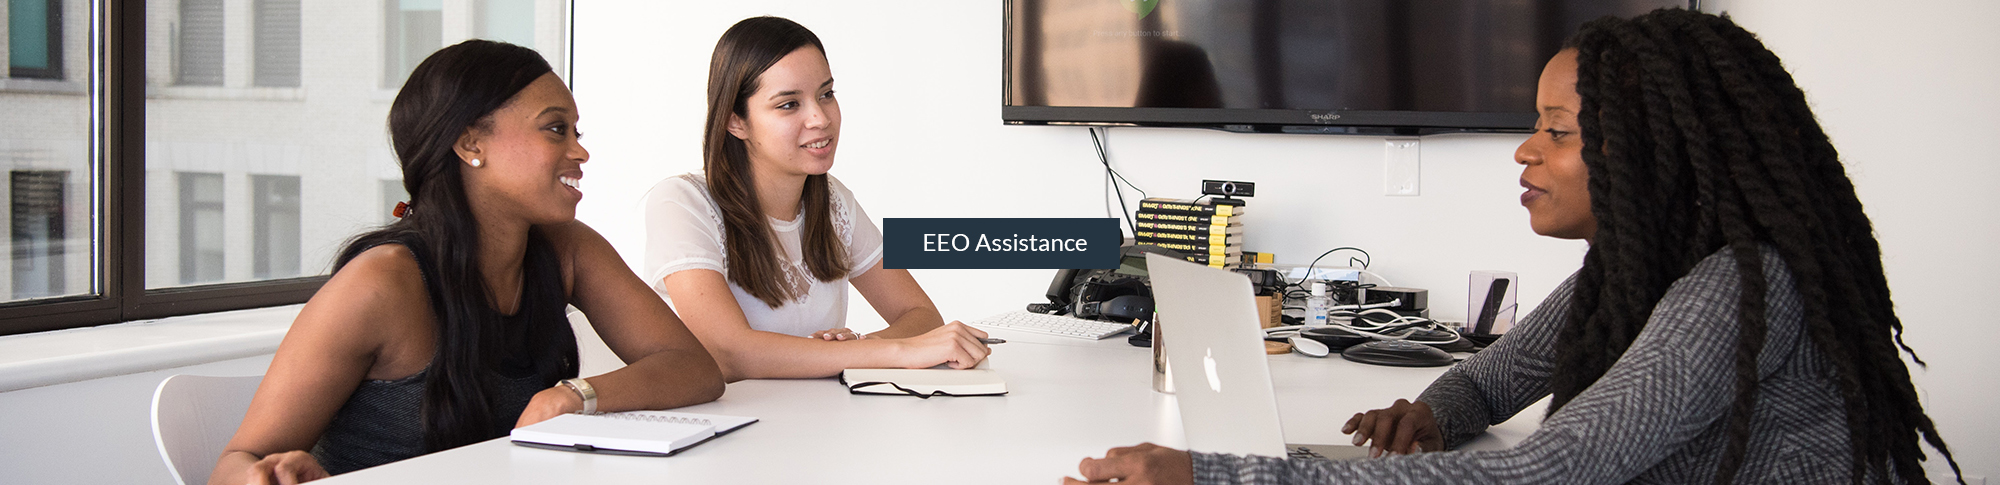 EEO Assistance - Seneca Scientific Solutions  Dean Seneca